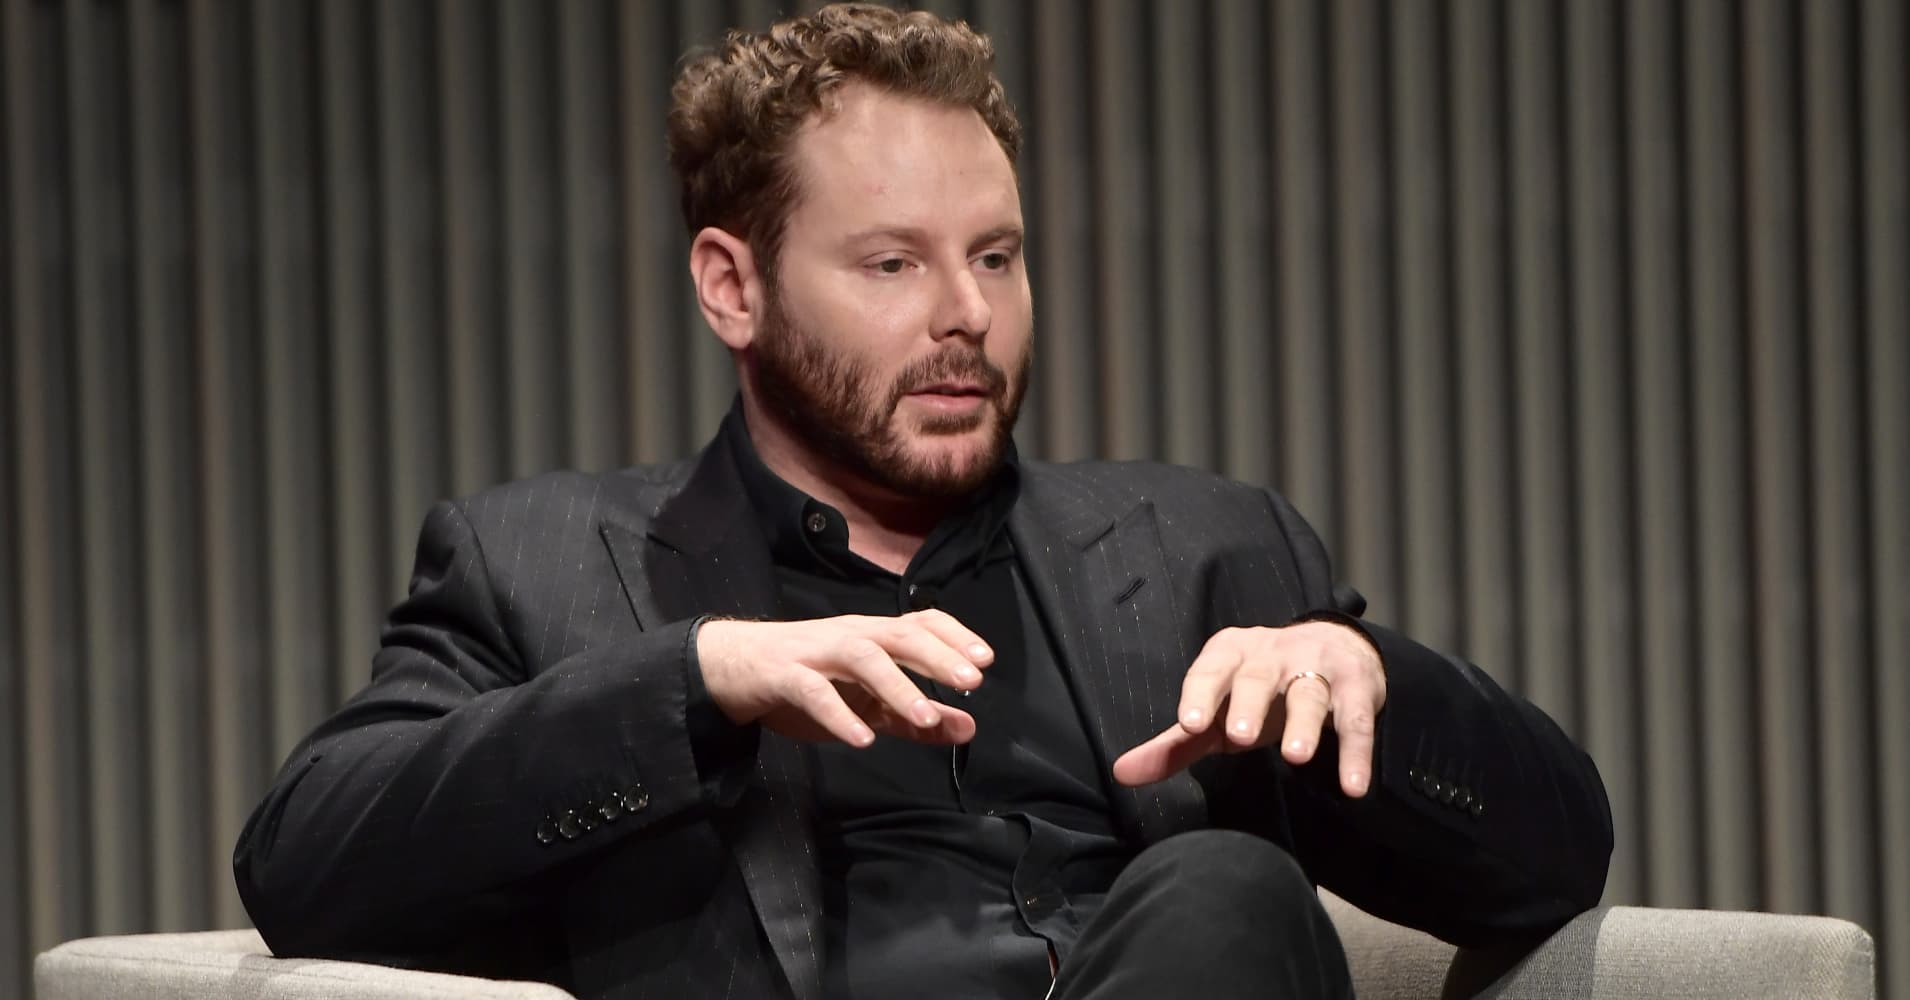 Facebook early exec Sean Parker: Why he left consumer tech for health